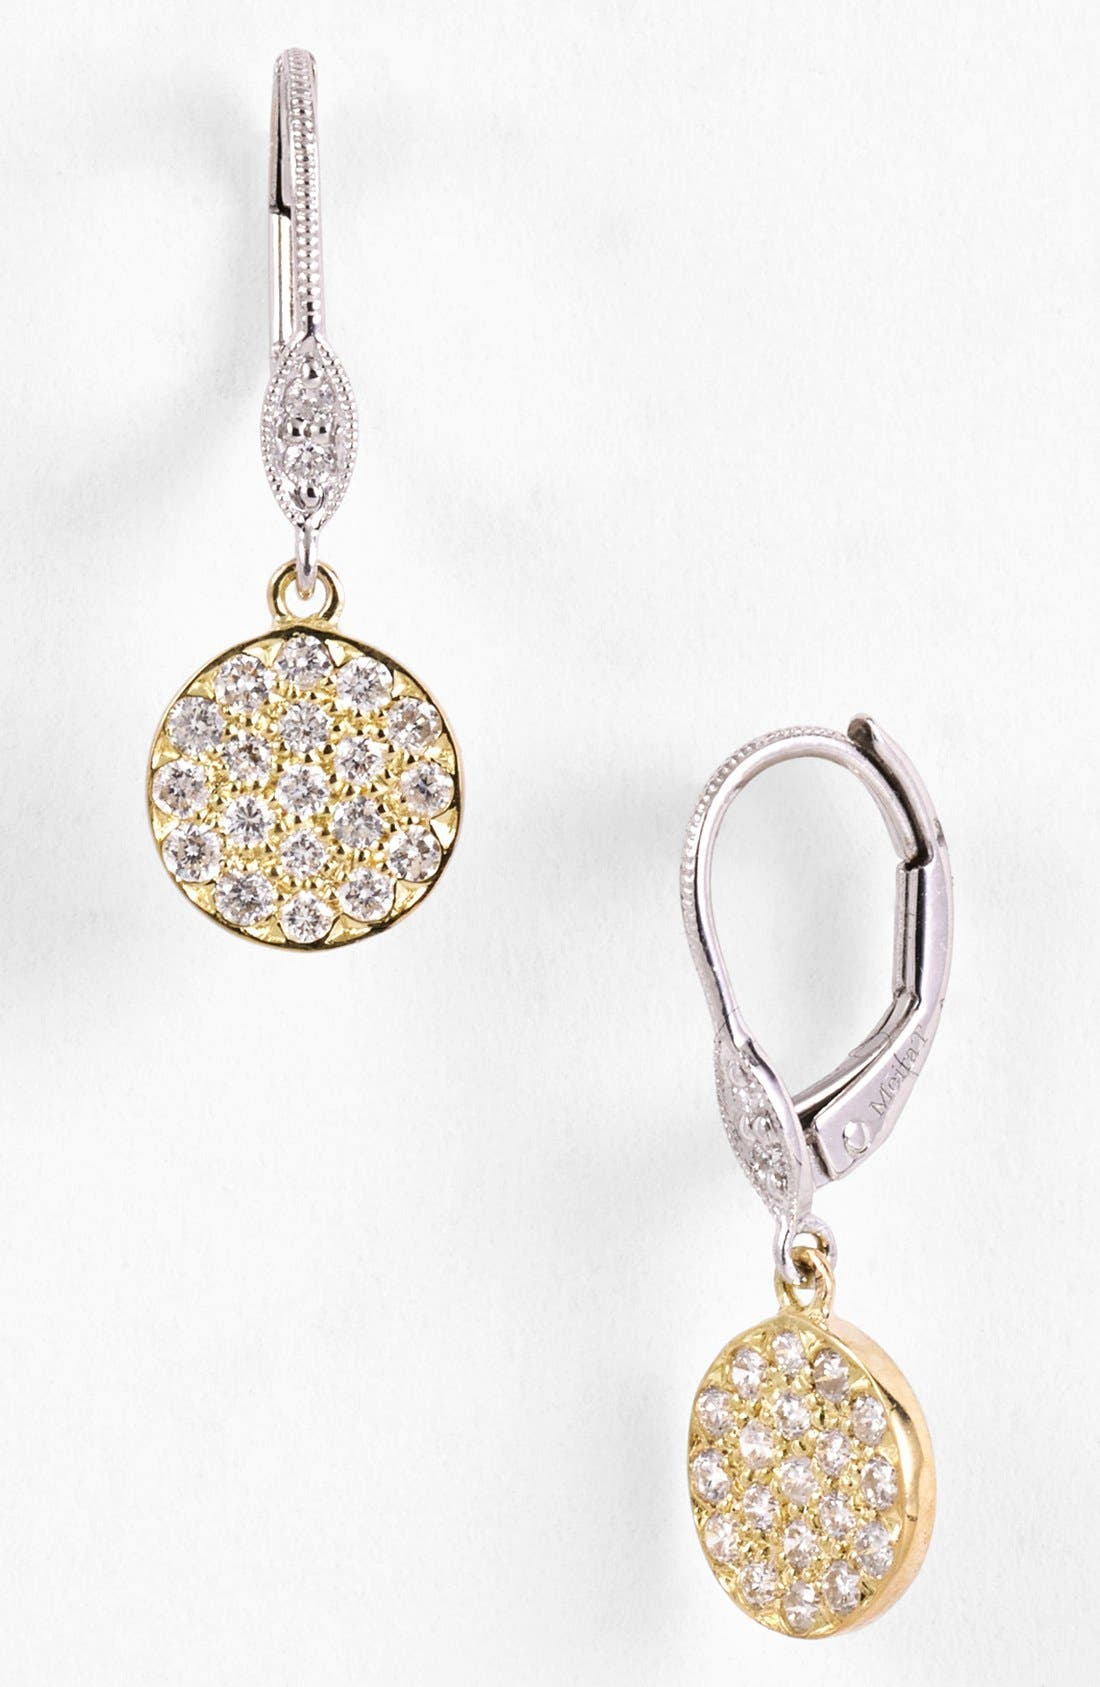 MeiraT 'Dazzling' Diamond Disc Drop Earrings,                             Main thumbnail 1, color,                             710